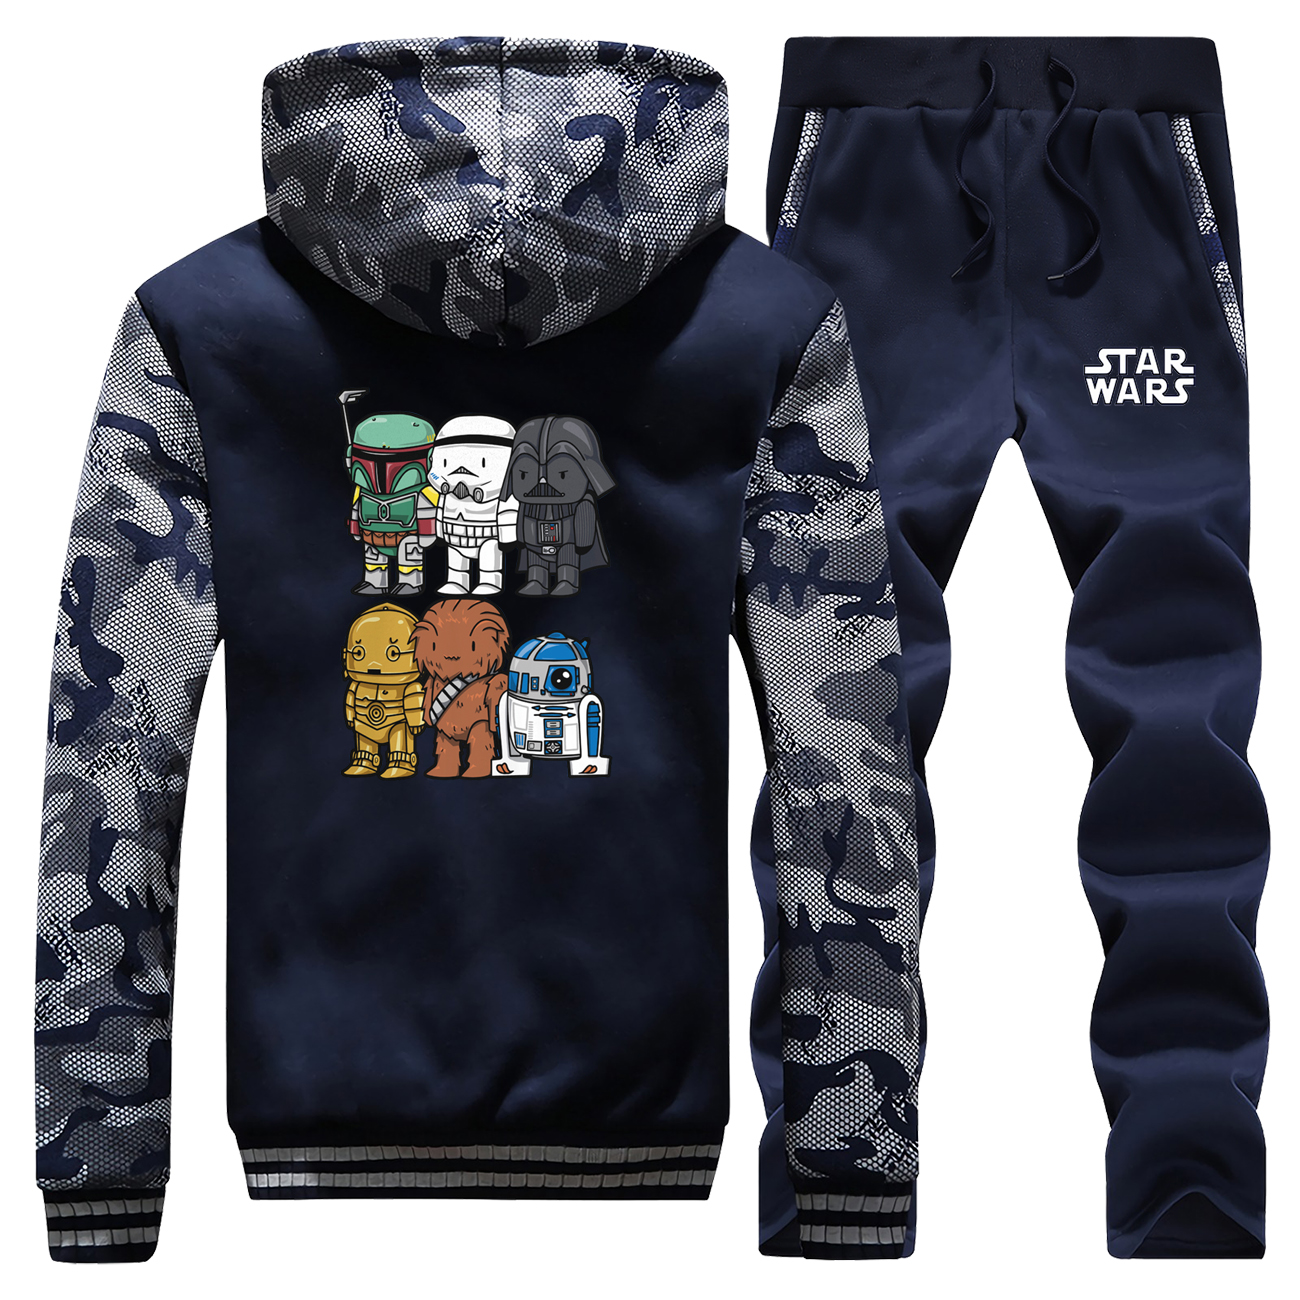 Star Wars Stormtrooper Winter Hot Sale Streetwear Camouflage Mens Hooded Coat Thick Fashion Suit Warm Jackets+Pants 2 Piece Set